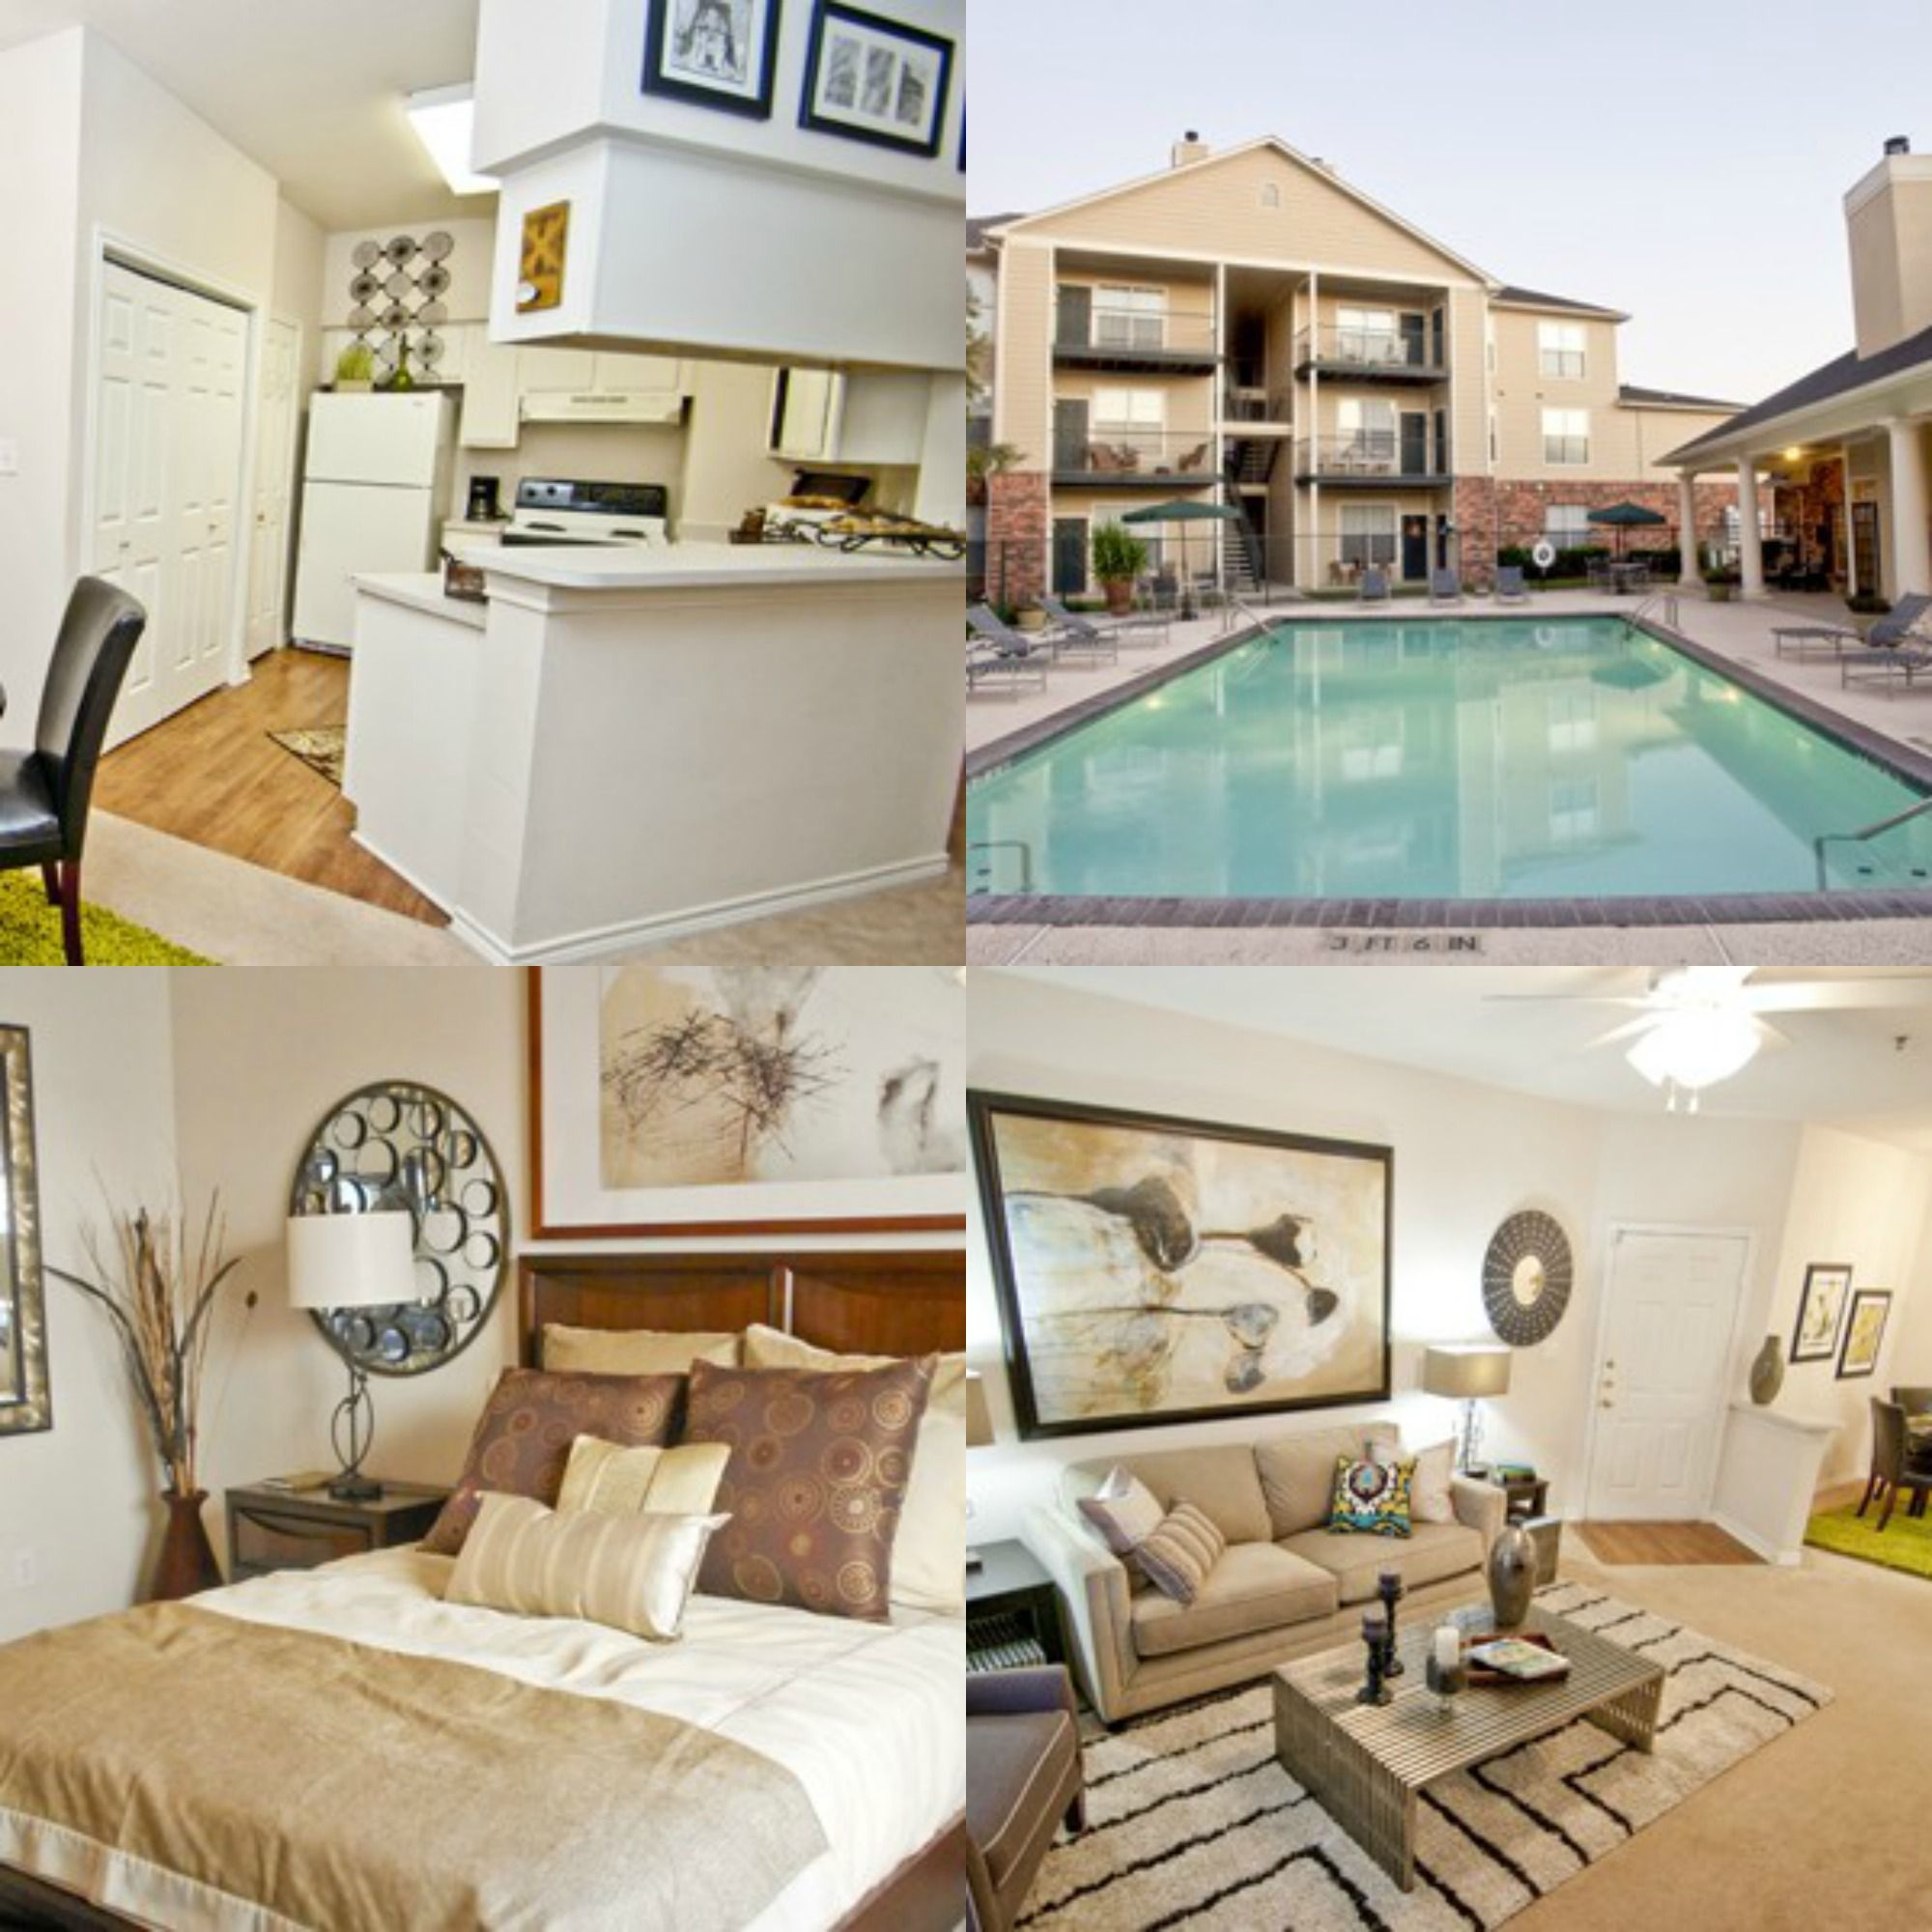 Properties: New Orleans Apartments | The Ou0027jays, Apartments In Baton Rouge  And Pools